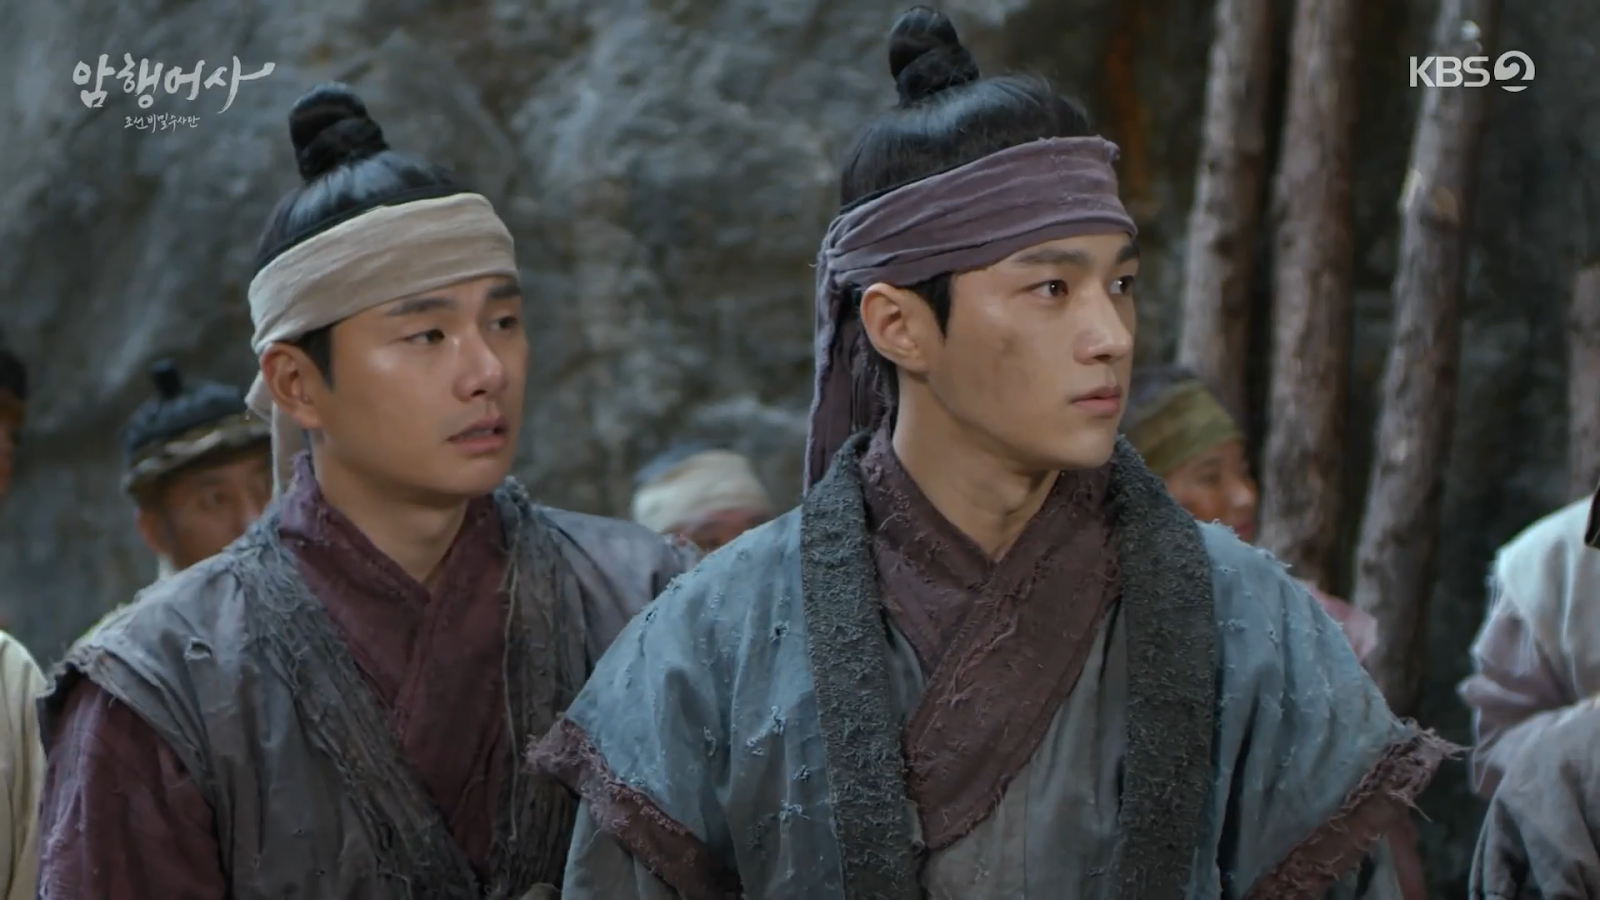 Royal Secret Agent Episode 4 Kim Myung-soo and Lee Yi-kyung